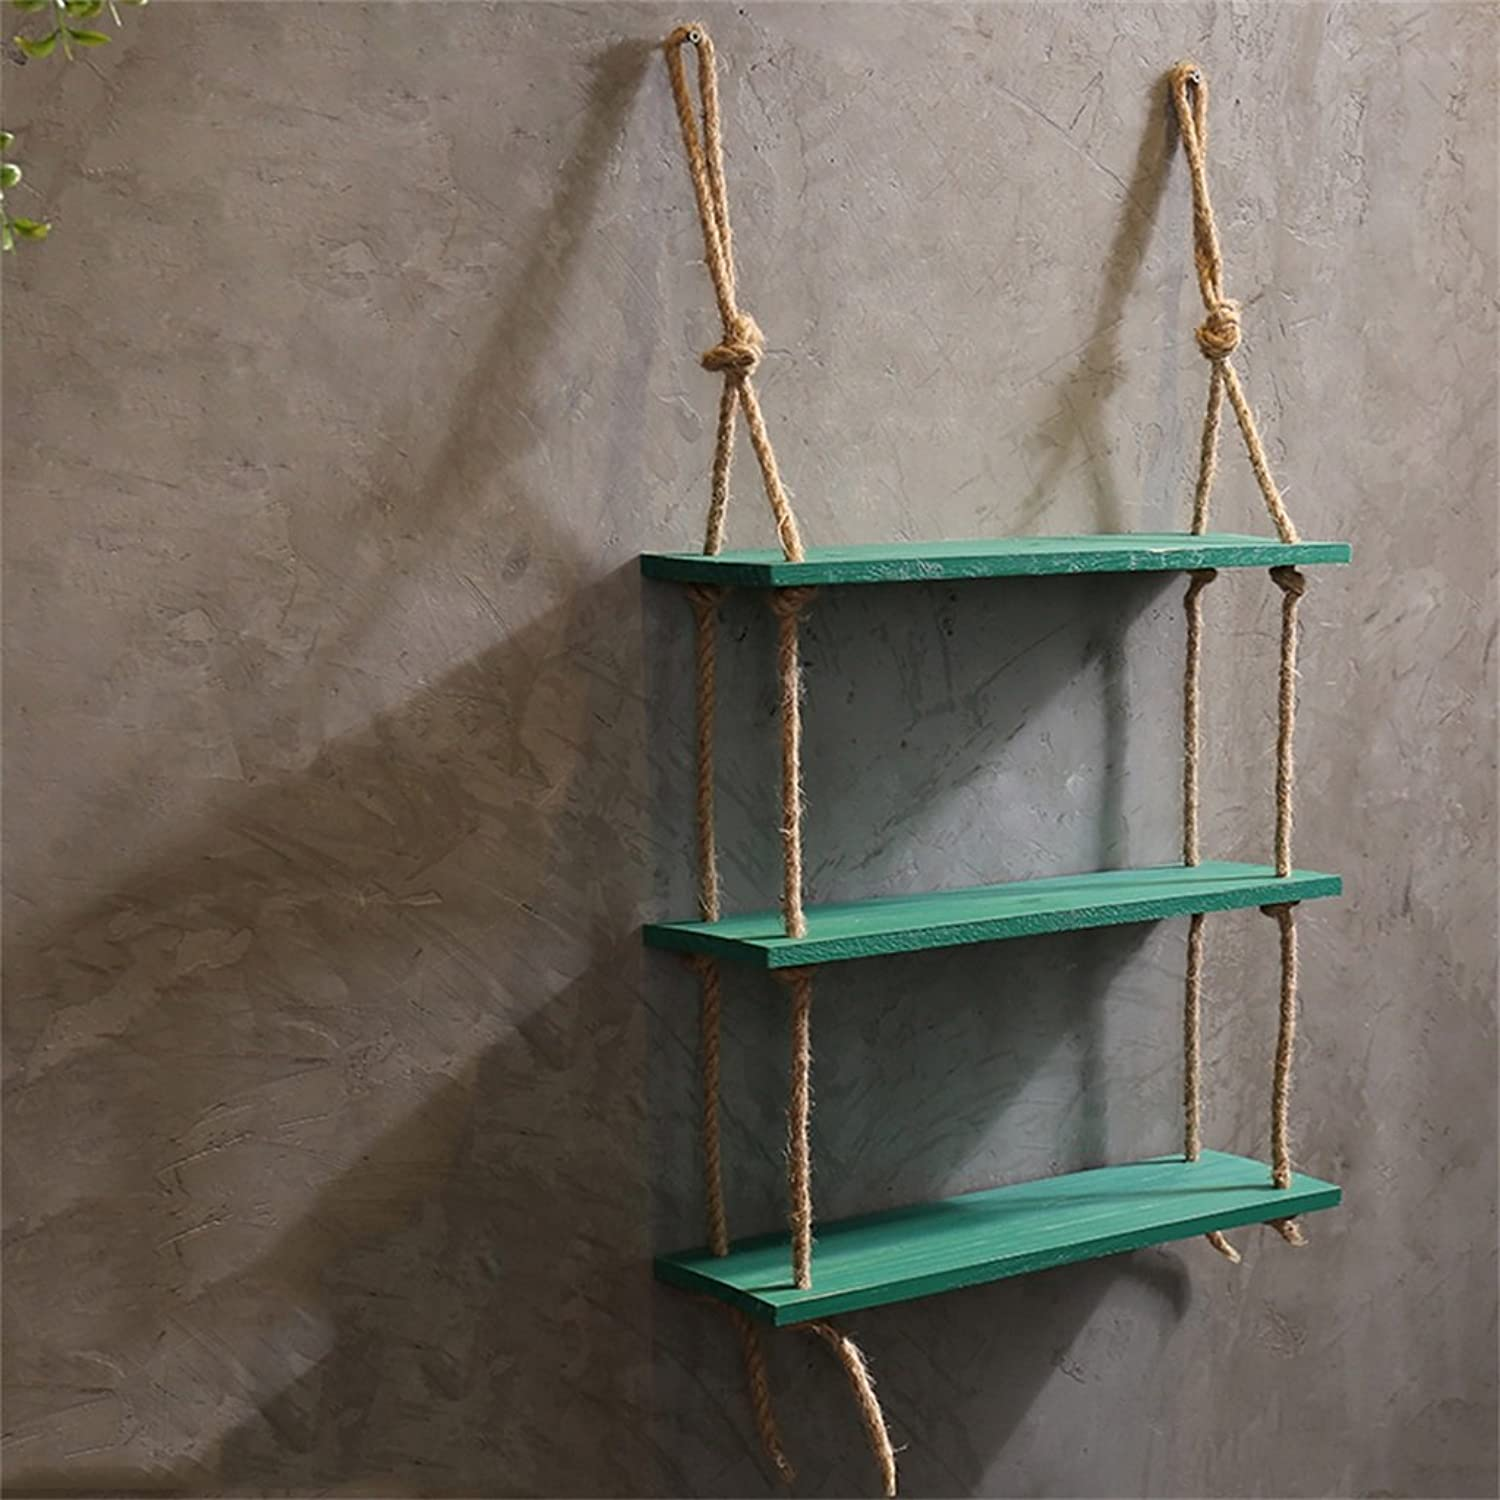 DNSJB Wall Decoration Frame, Hemp Rope Storage Rack, Wall Hanging Pendant Shelf Industrial Style (color   Green)